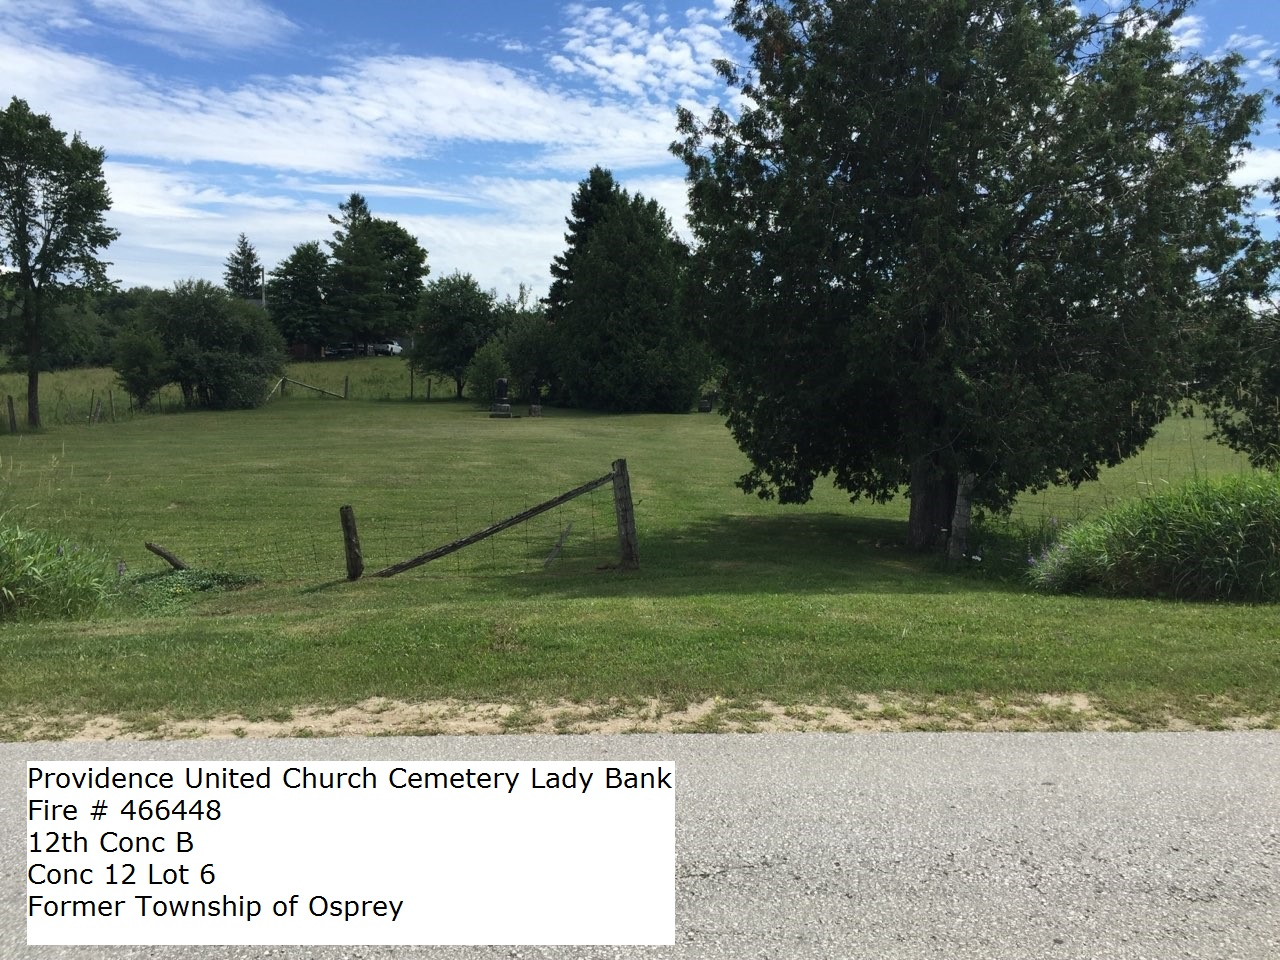 Picture of Providence United Church Cemetery in Lady Bank